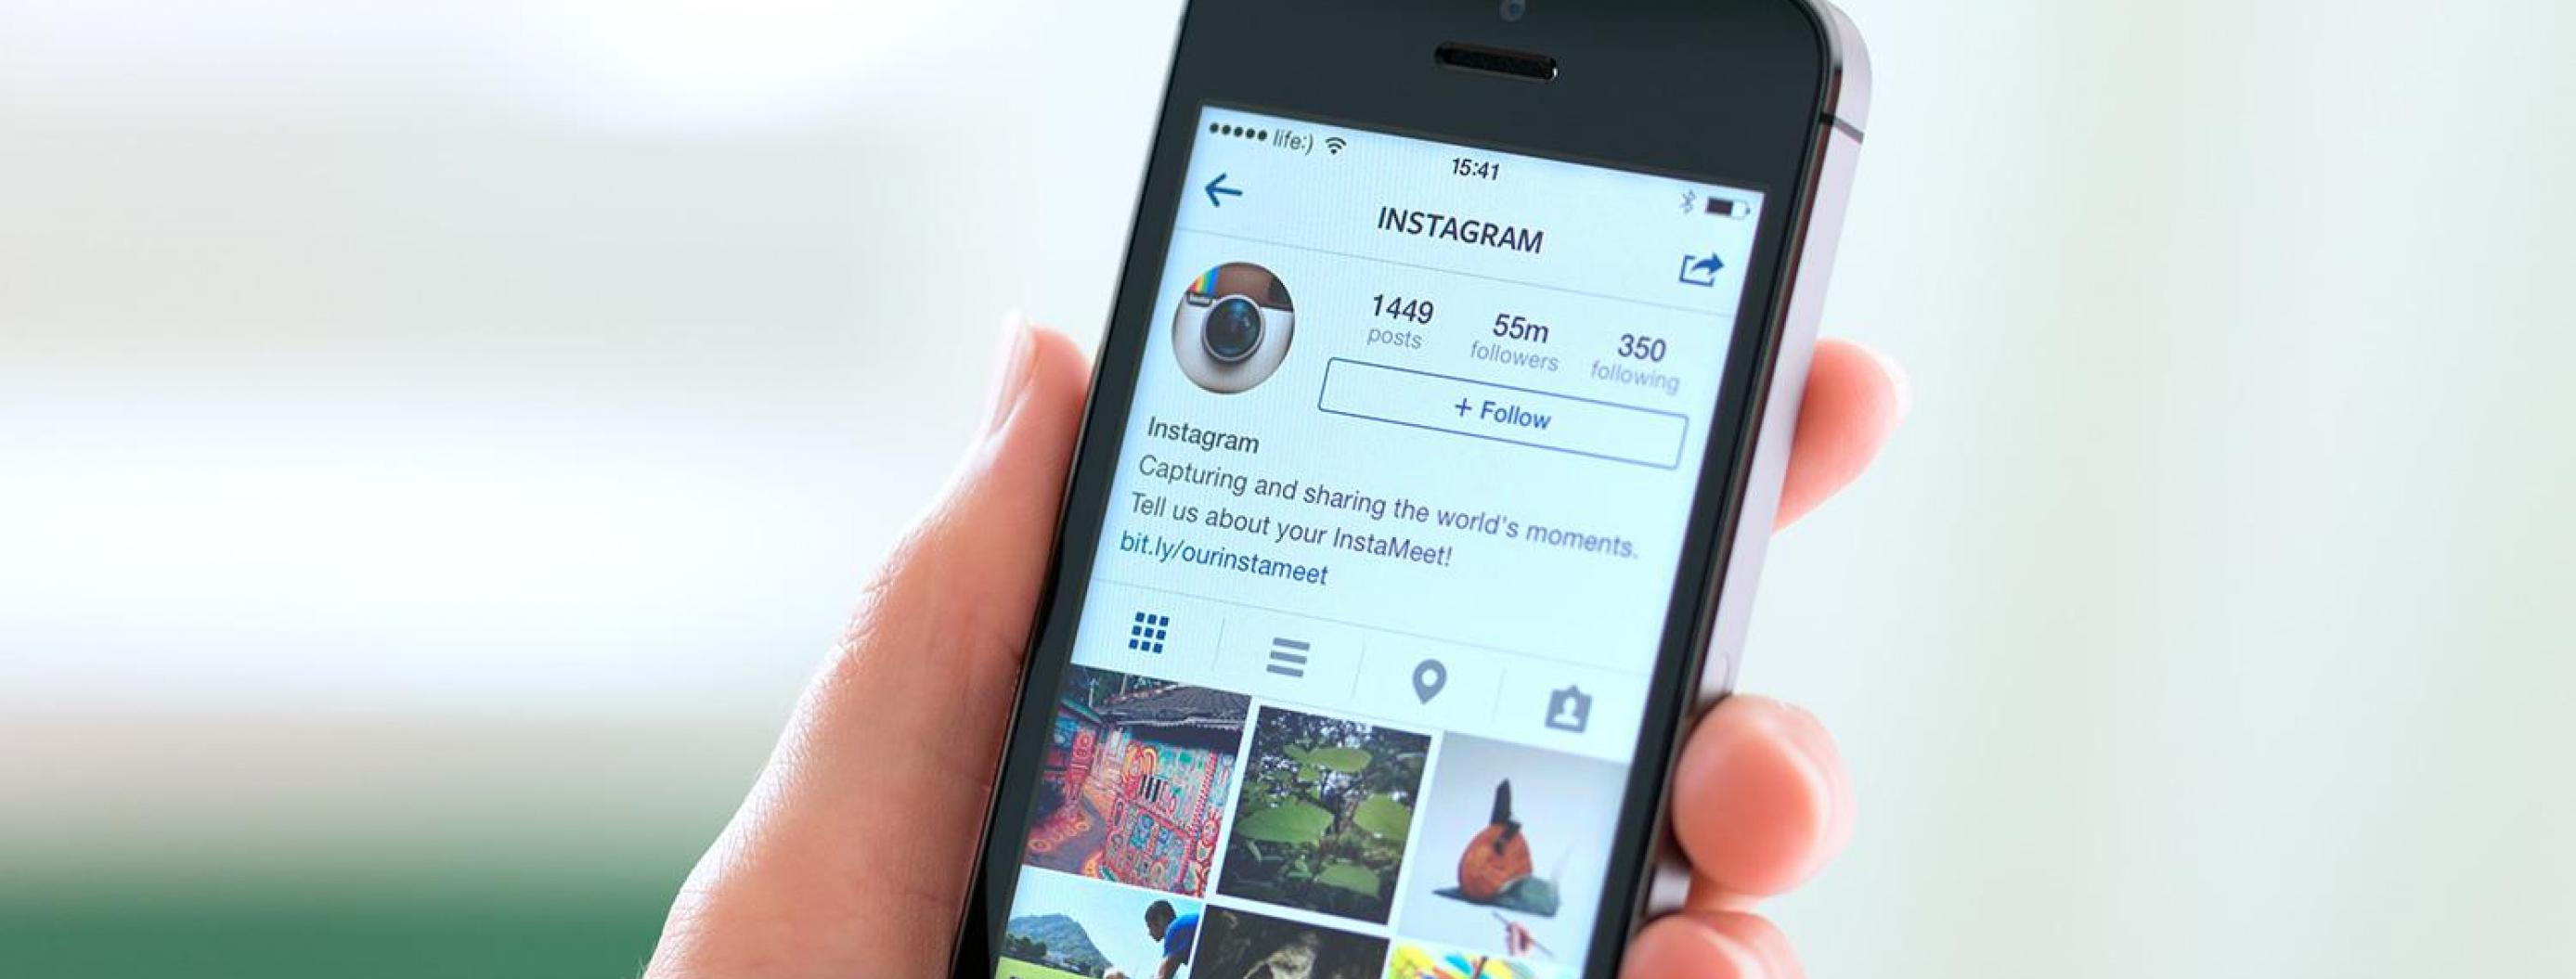 Instagram Releases an Alpha Program on iOS and Android